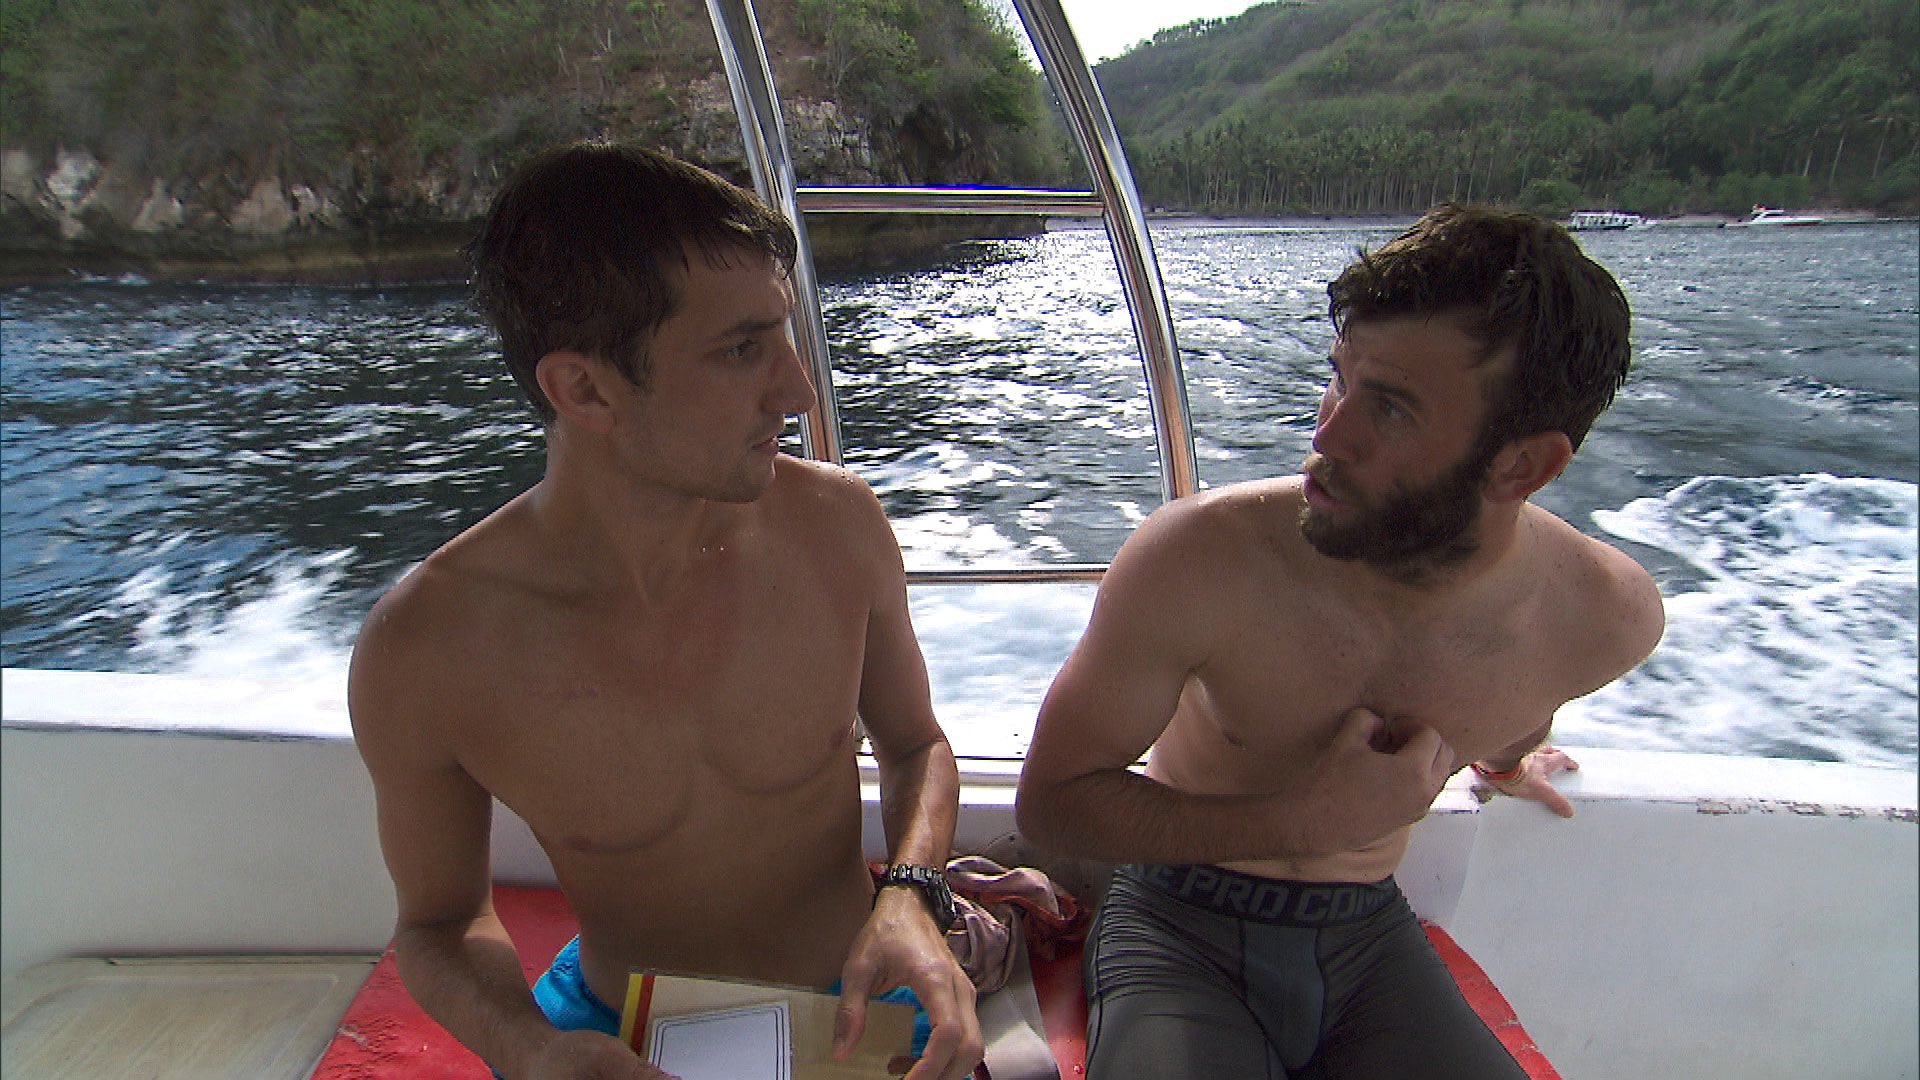 Kurt and Brodie strategize after snorkeling.